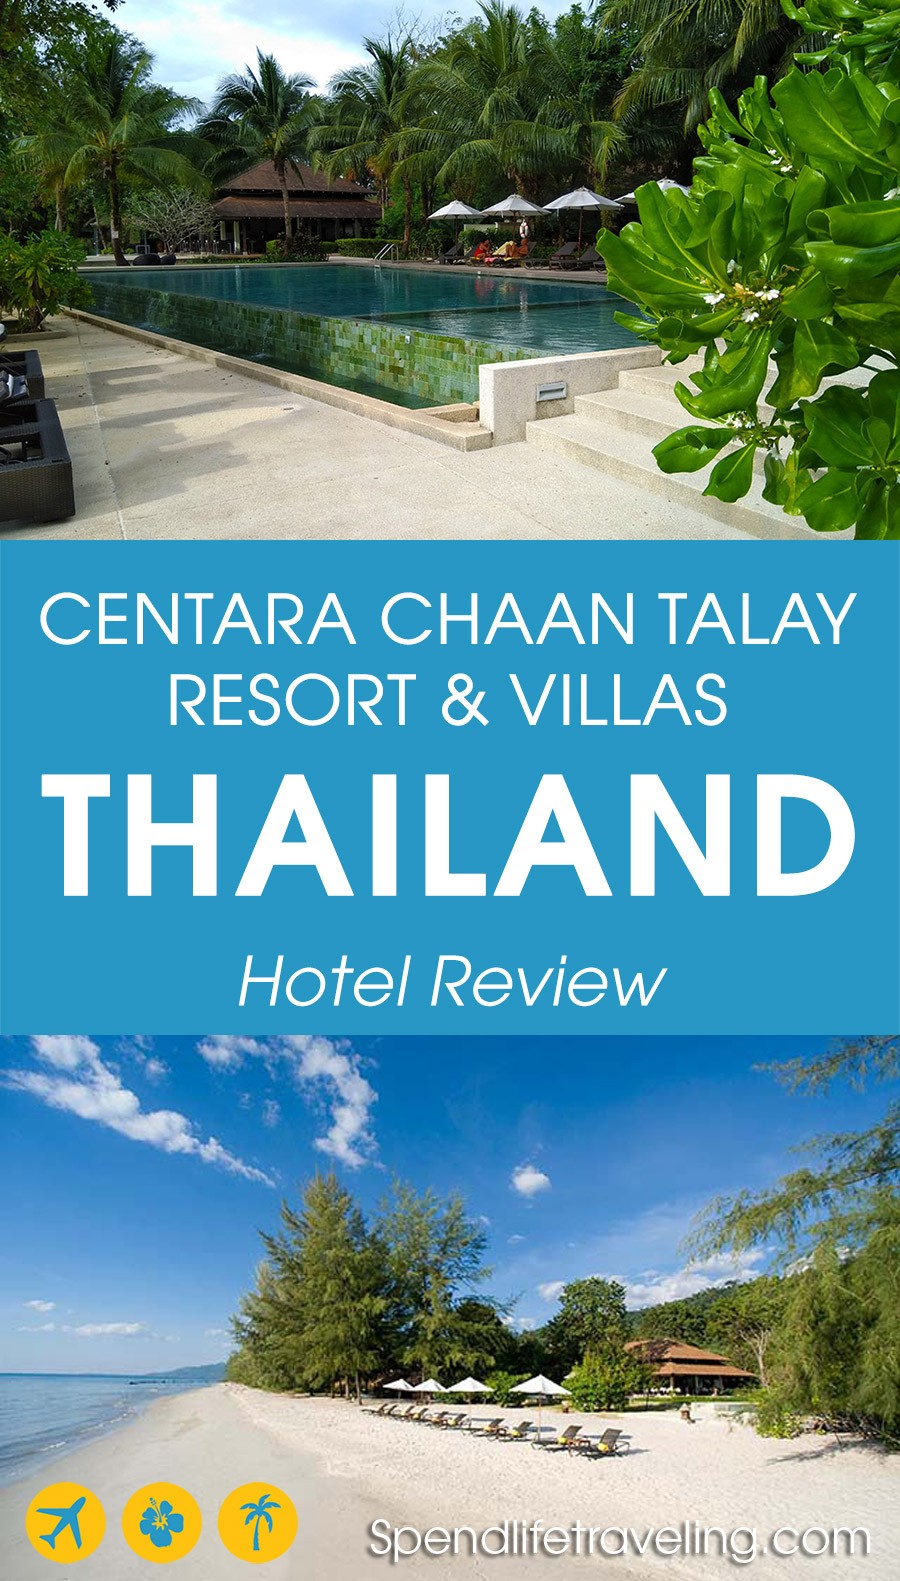 Are you looking for a resort in #Thailand to get away from it all? To relax on a quiet, tropical beach? Then Check out Centara Chaan Talay Resort & Villas in Trat. #Thailandresort #Thailandluxury #luxurytravel